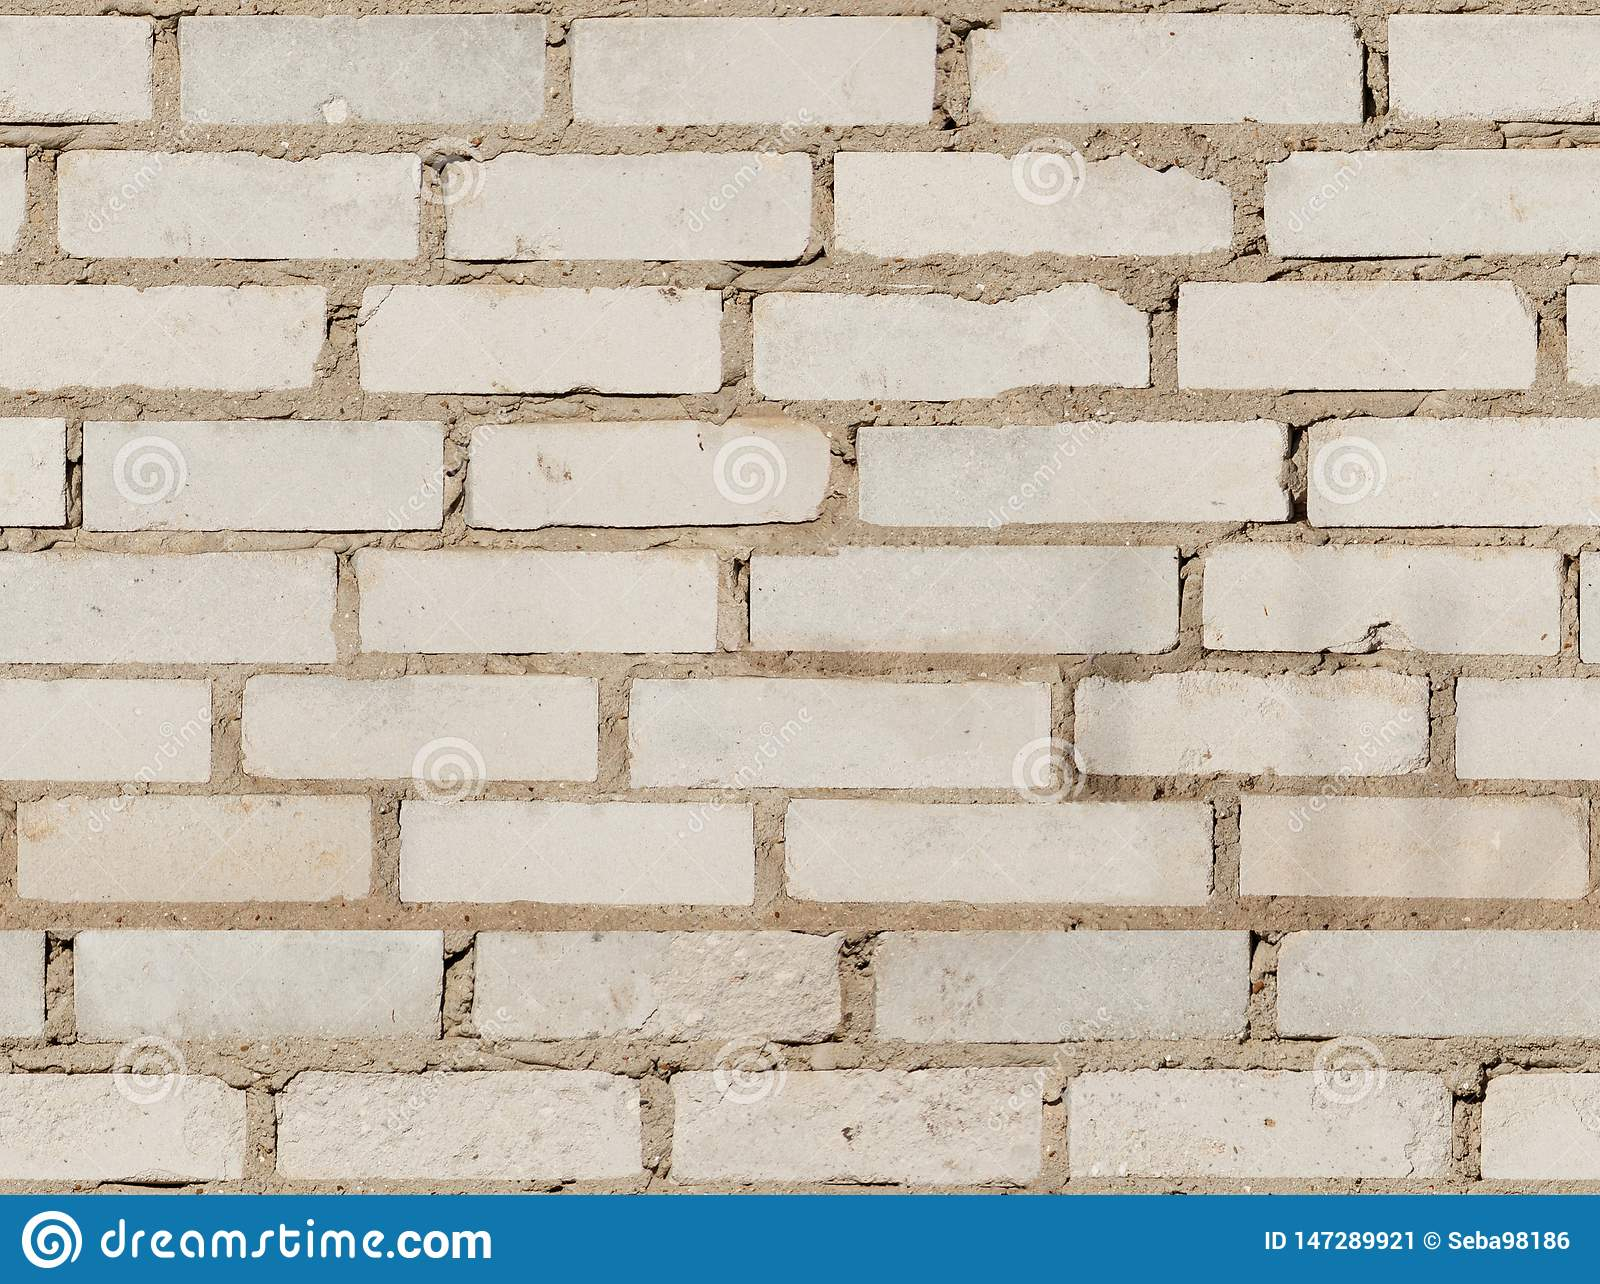 Texture of the old white brick wall